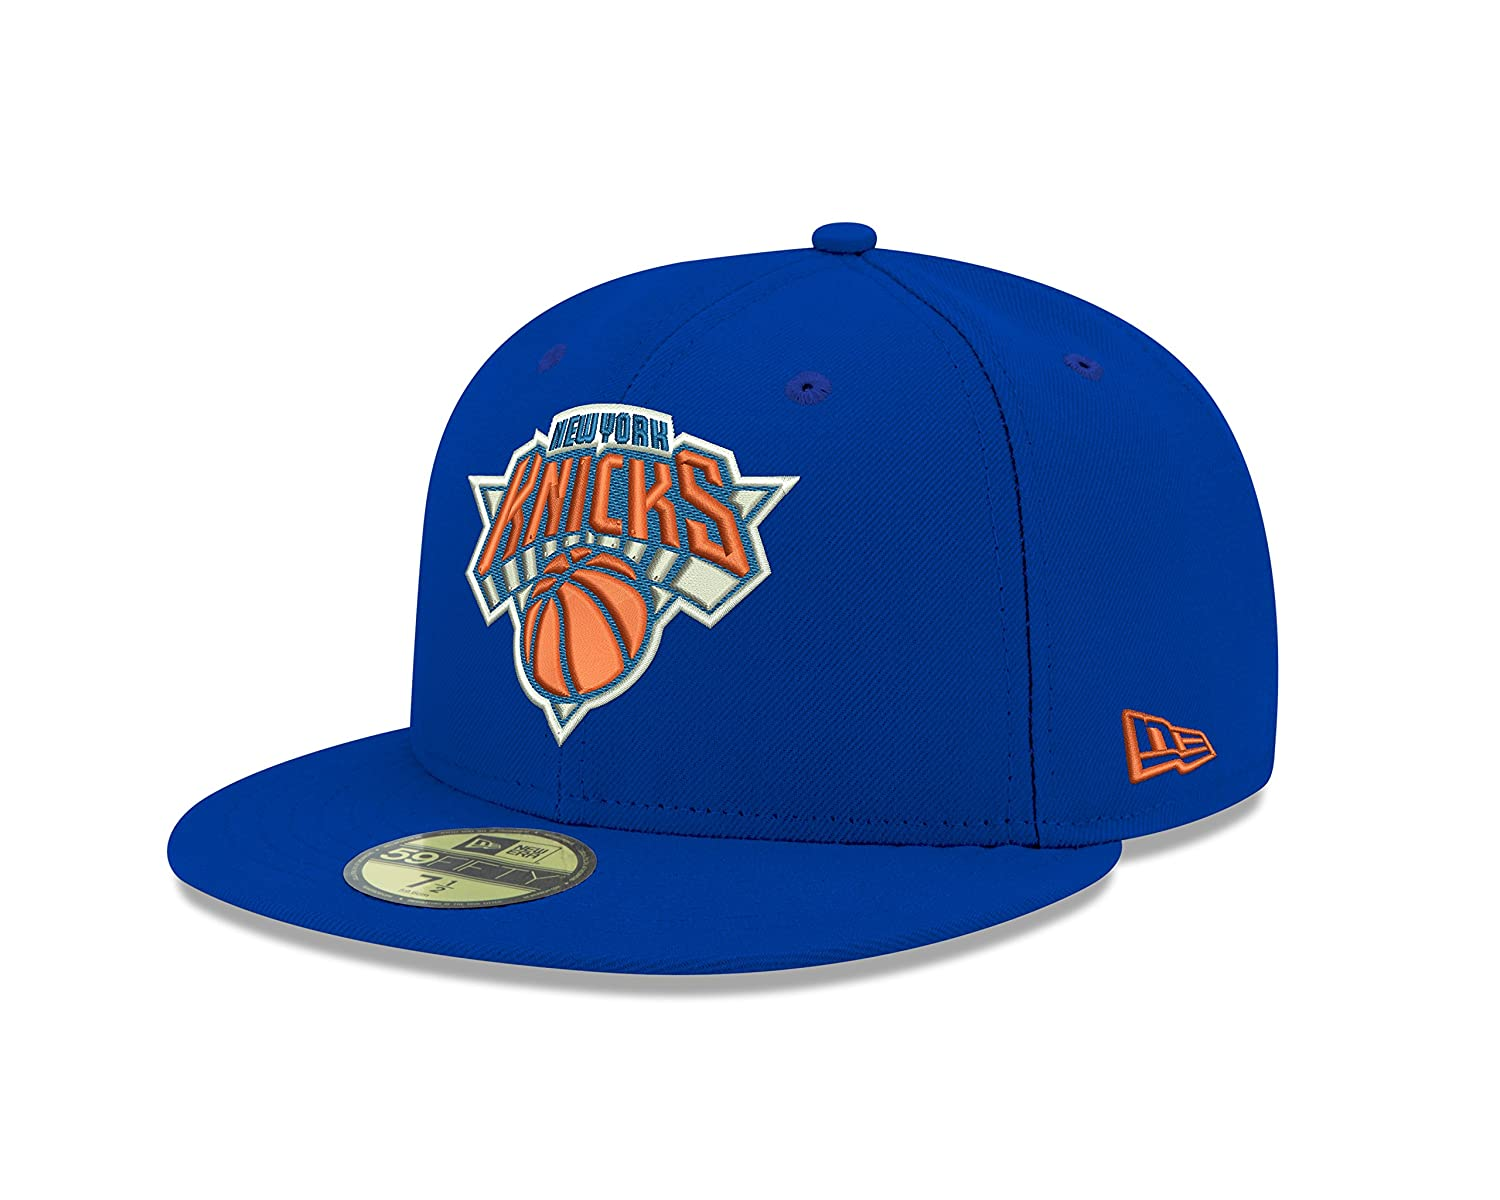 3536b84fbe6def Amazon.com : NBA Men's Official 59FIFTY Fitted Cap : Clothing